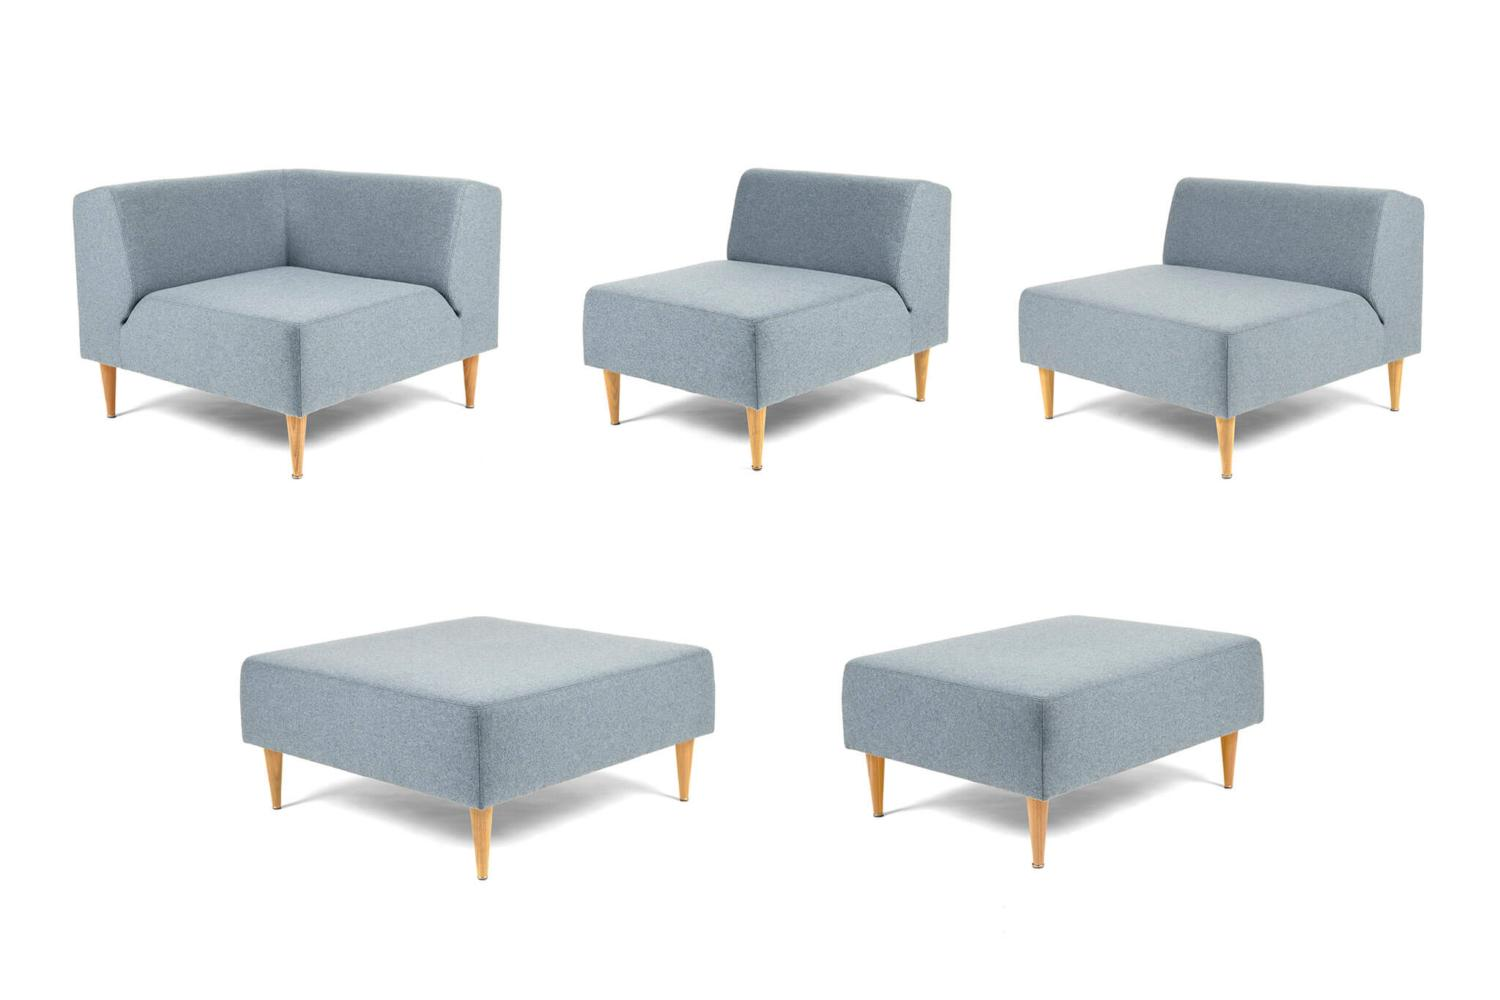 Strange Modular Sofa 1 Sofa 100 Options Oot Oot Studio Ocoug Best Dining Table And Chair Ideas Images Ocougorg